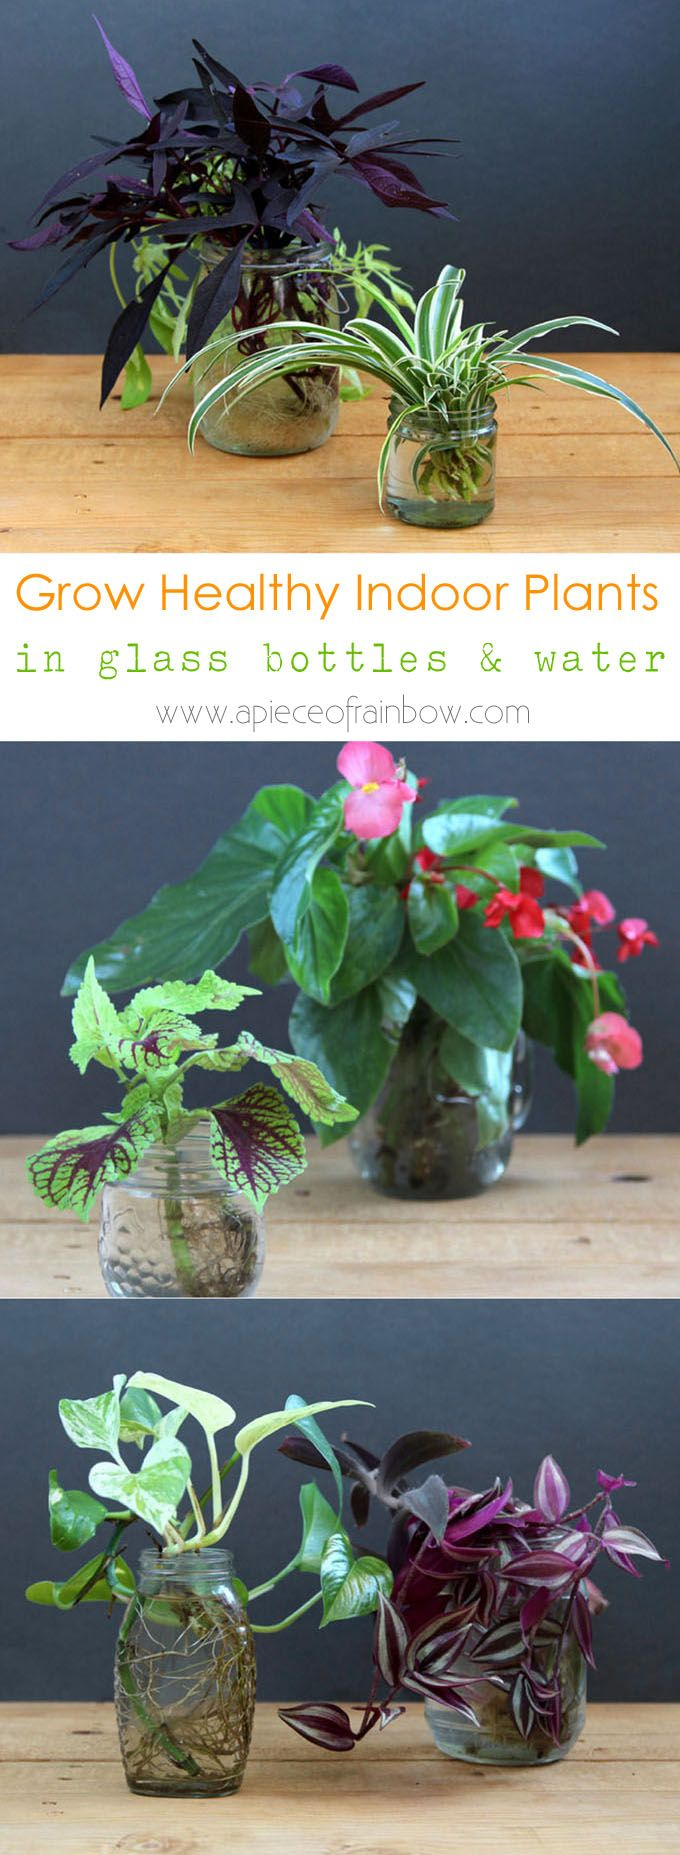 Grow Beautiful Indoor Plants In Glass Bottles - A Piece Of Rainbow